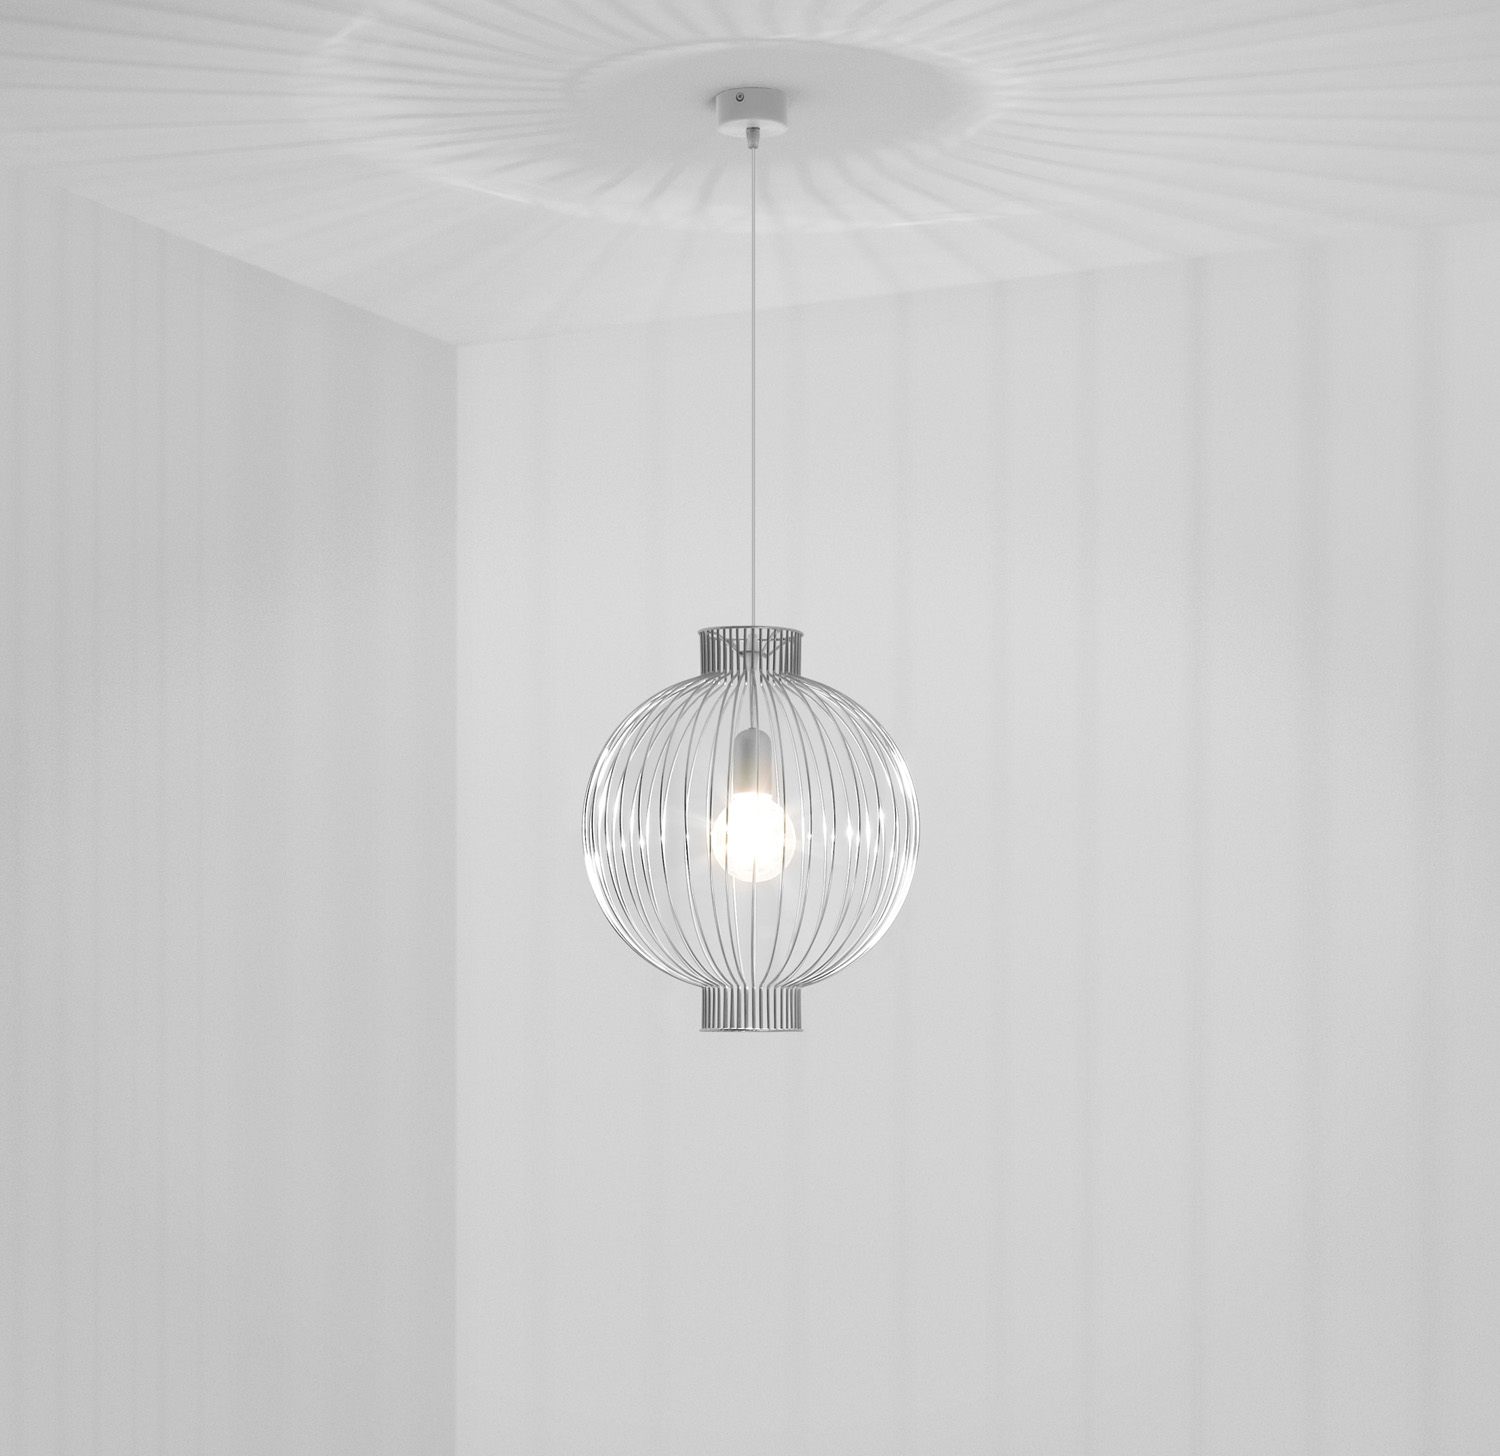 Nudie pendant light, ismobjects.com.au